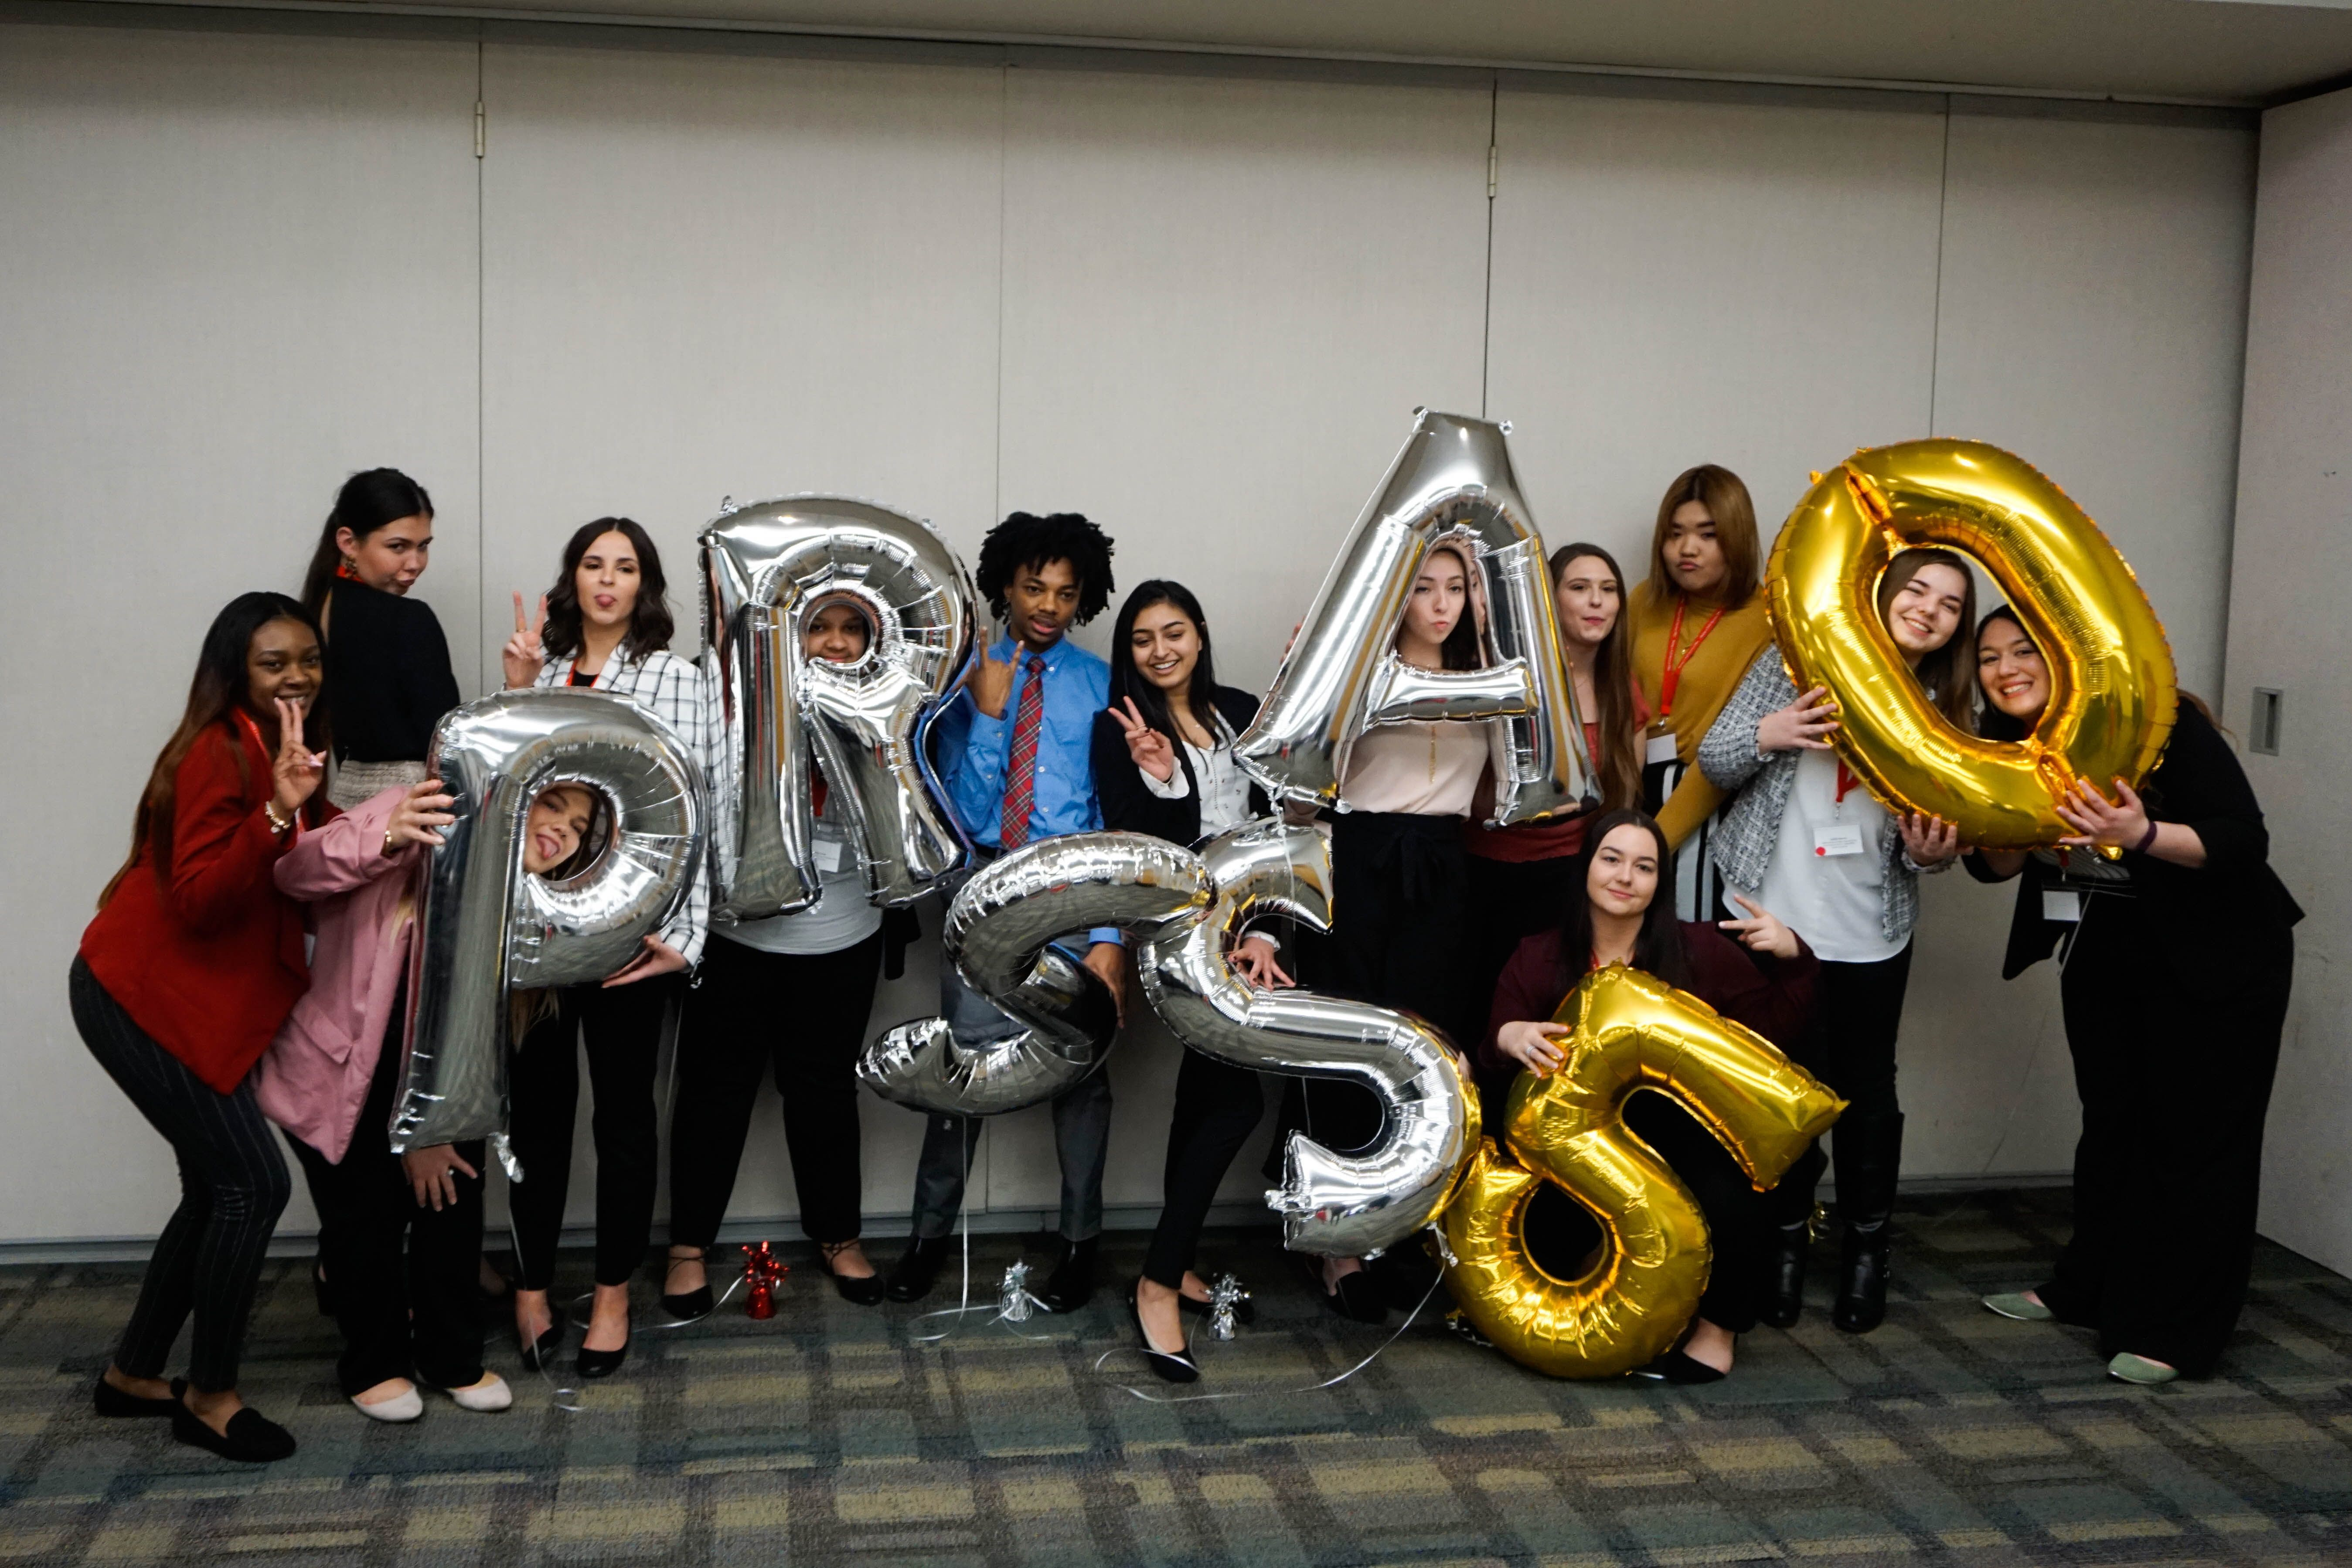 Students from the Klein College of Media and Communication pose with large letter and number balloons.